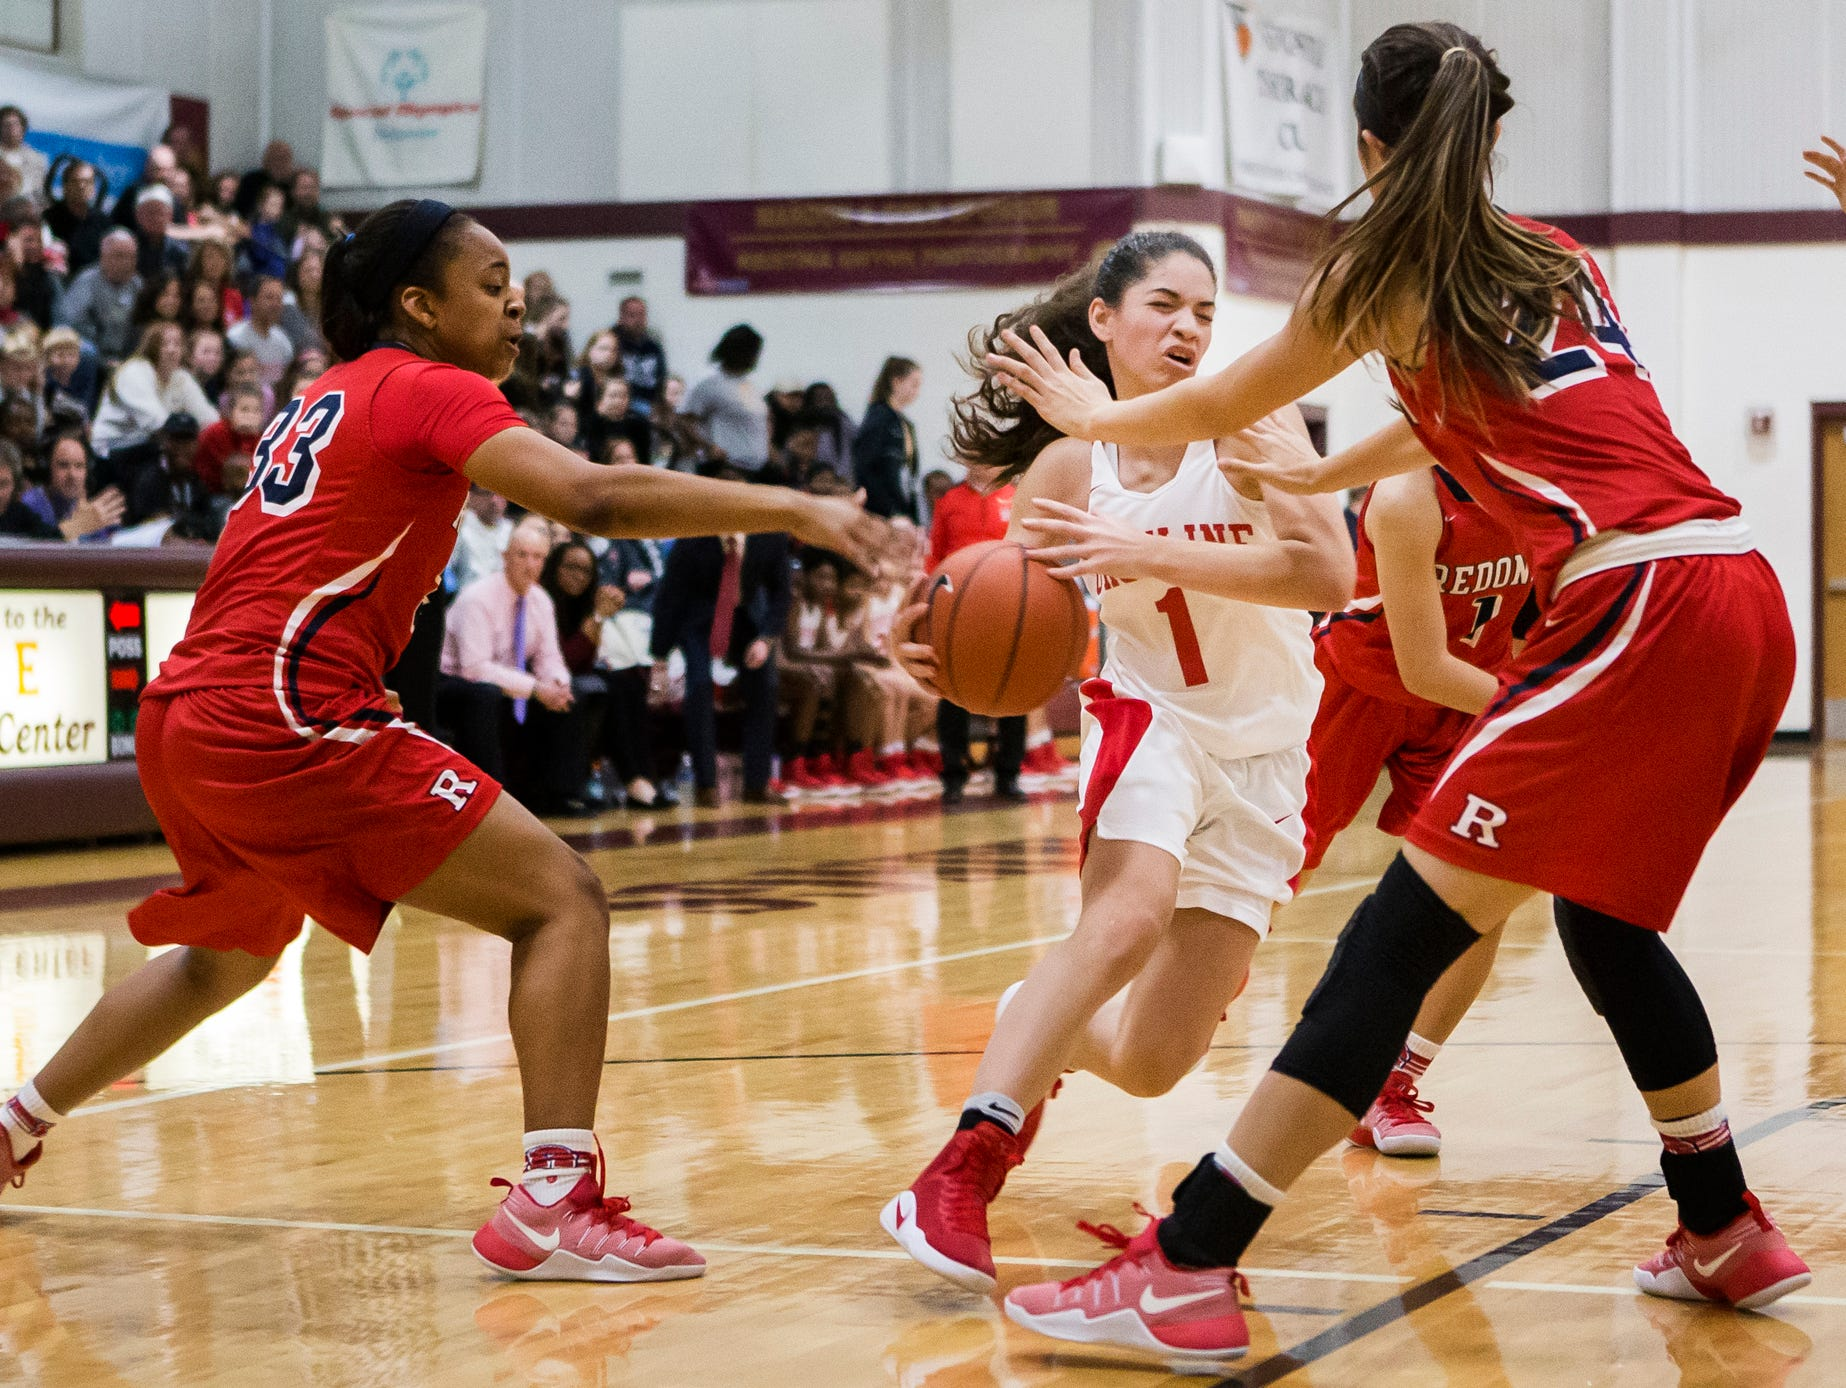 Ursuline's Alisha Lewis (No. 1) drives to the basket through a group of Redondo Union defenders in the first half of Ursuline's 39-26 win over Redondo Union High School in the Diamond State Classic at St. Elizabeth High School in Wilmington on Tuesday night.